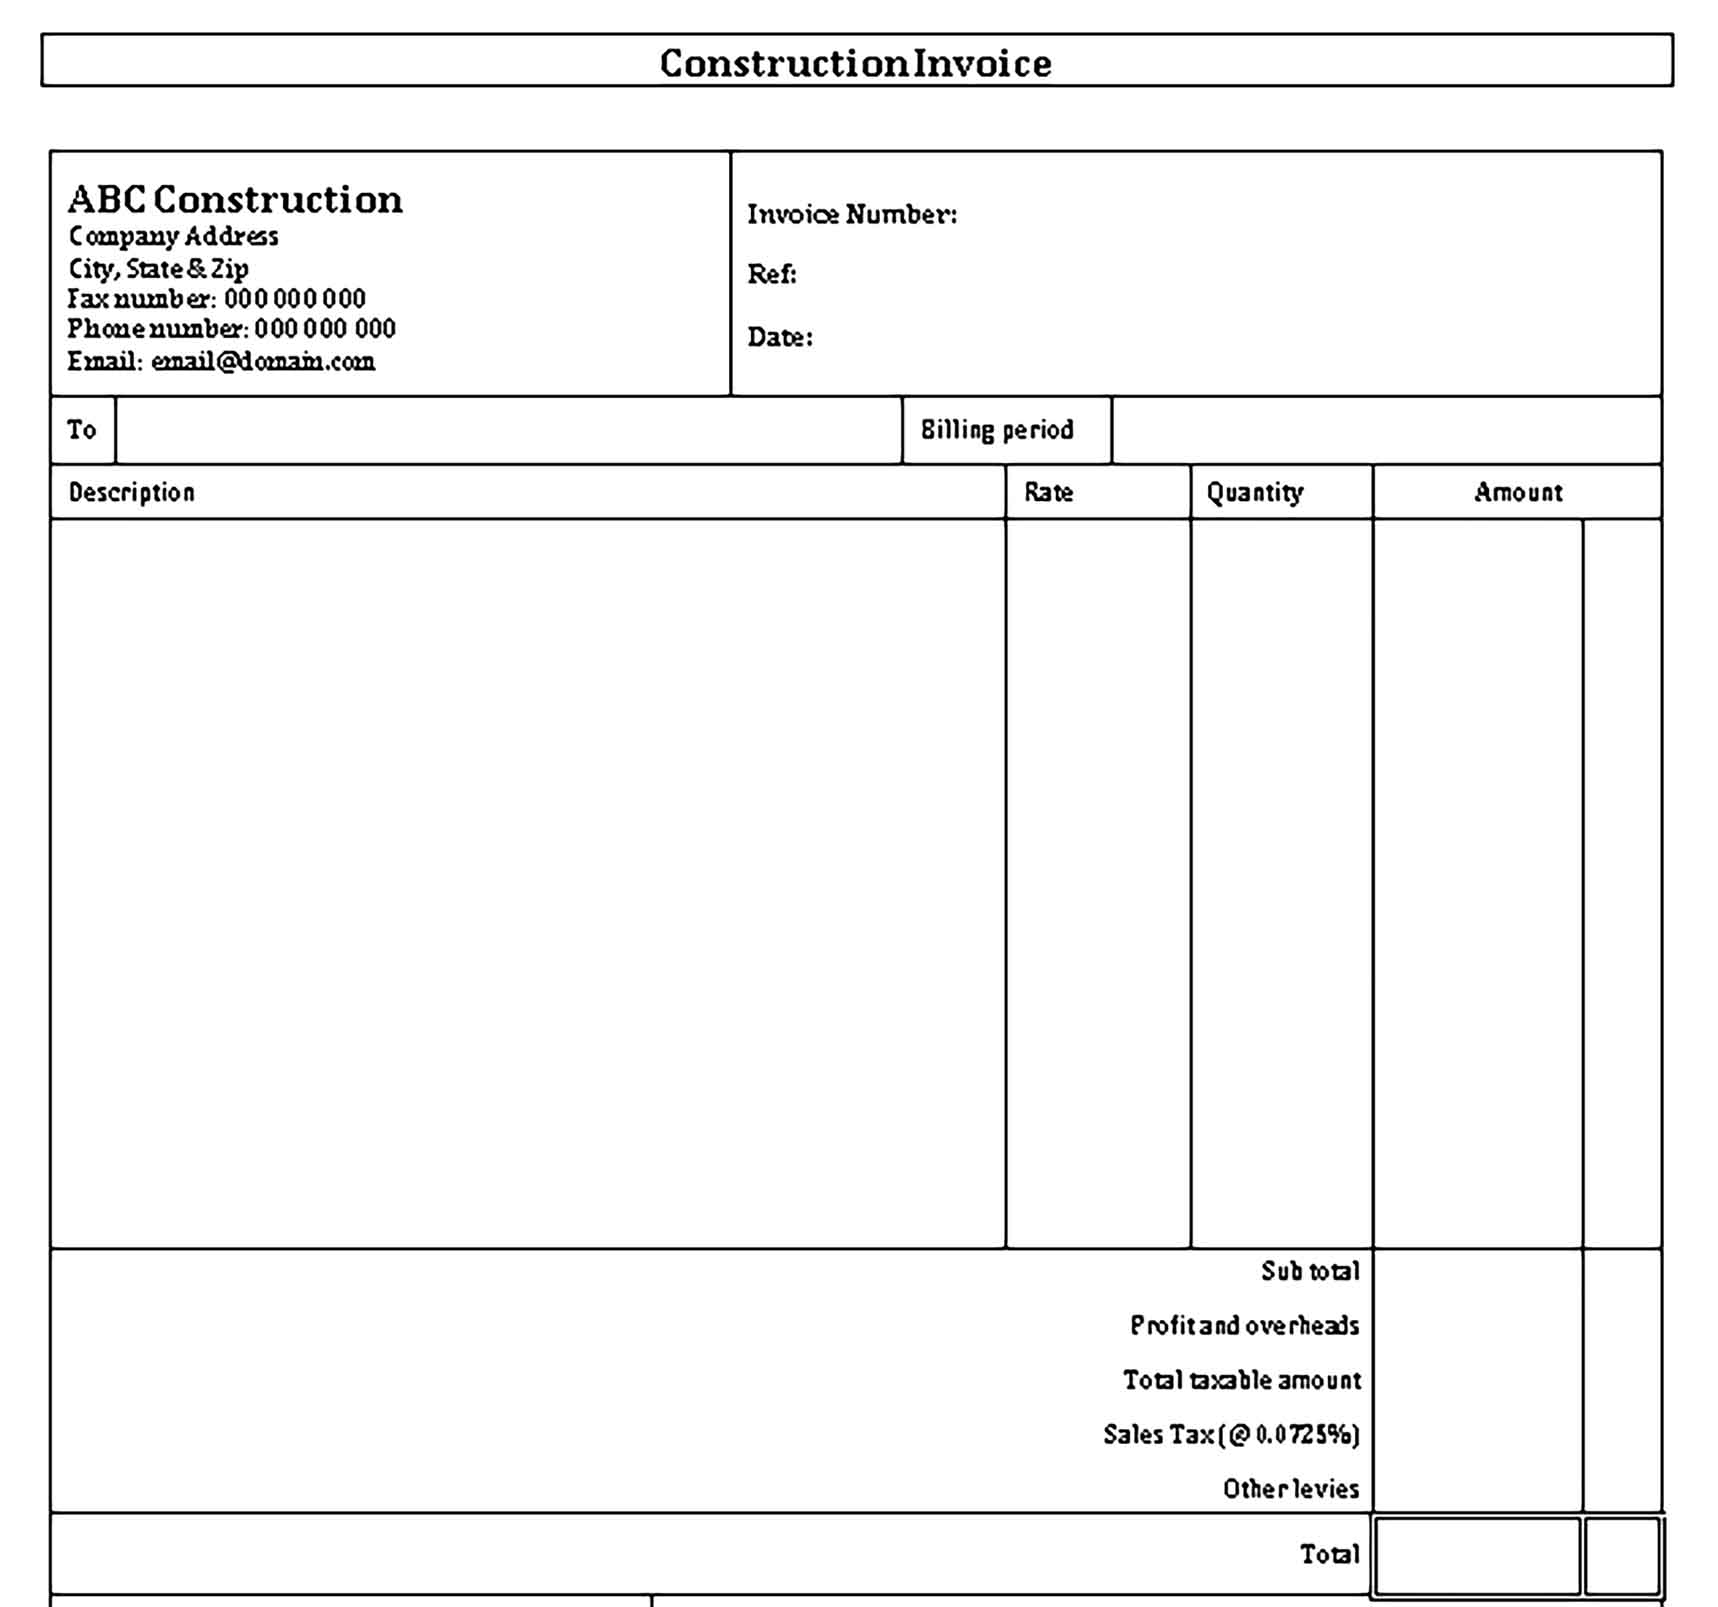 Sample Templates Self Employed Construction Invoice